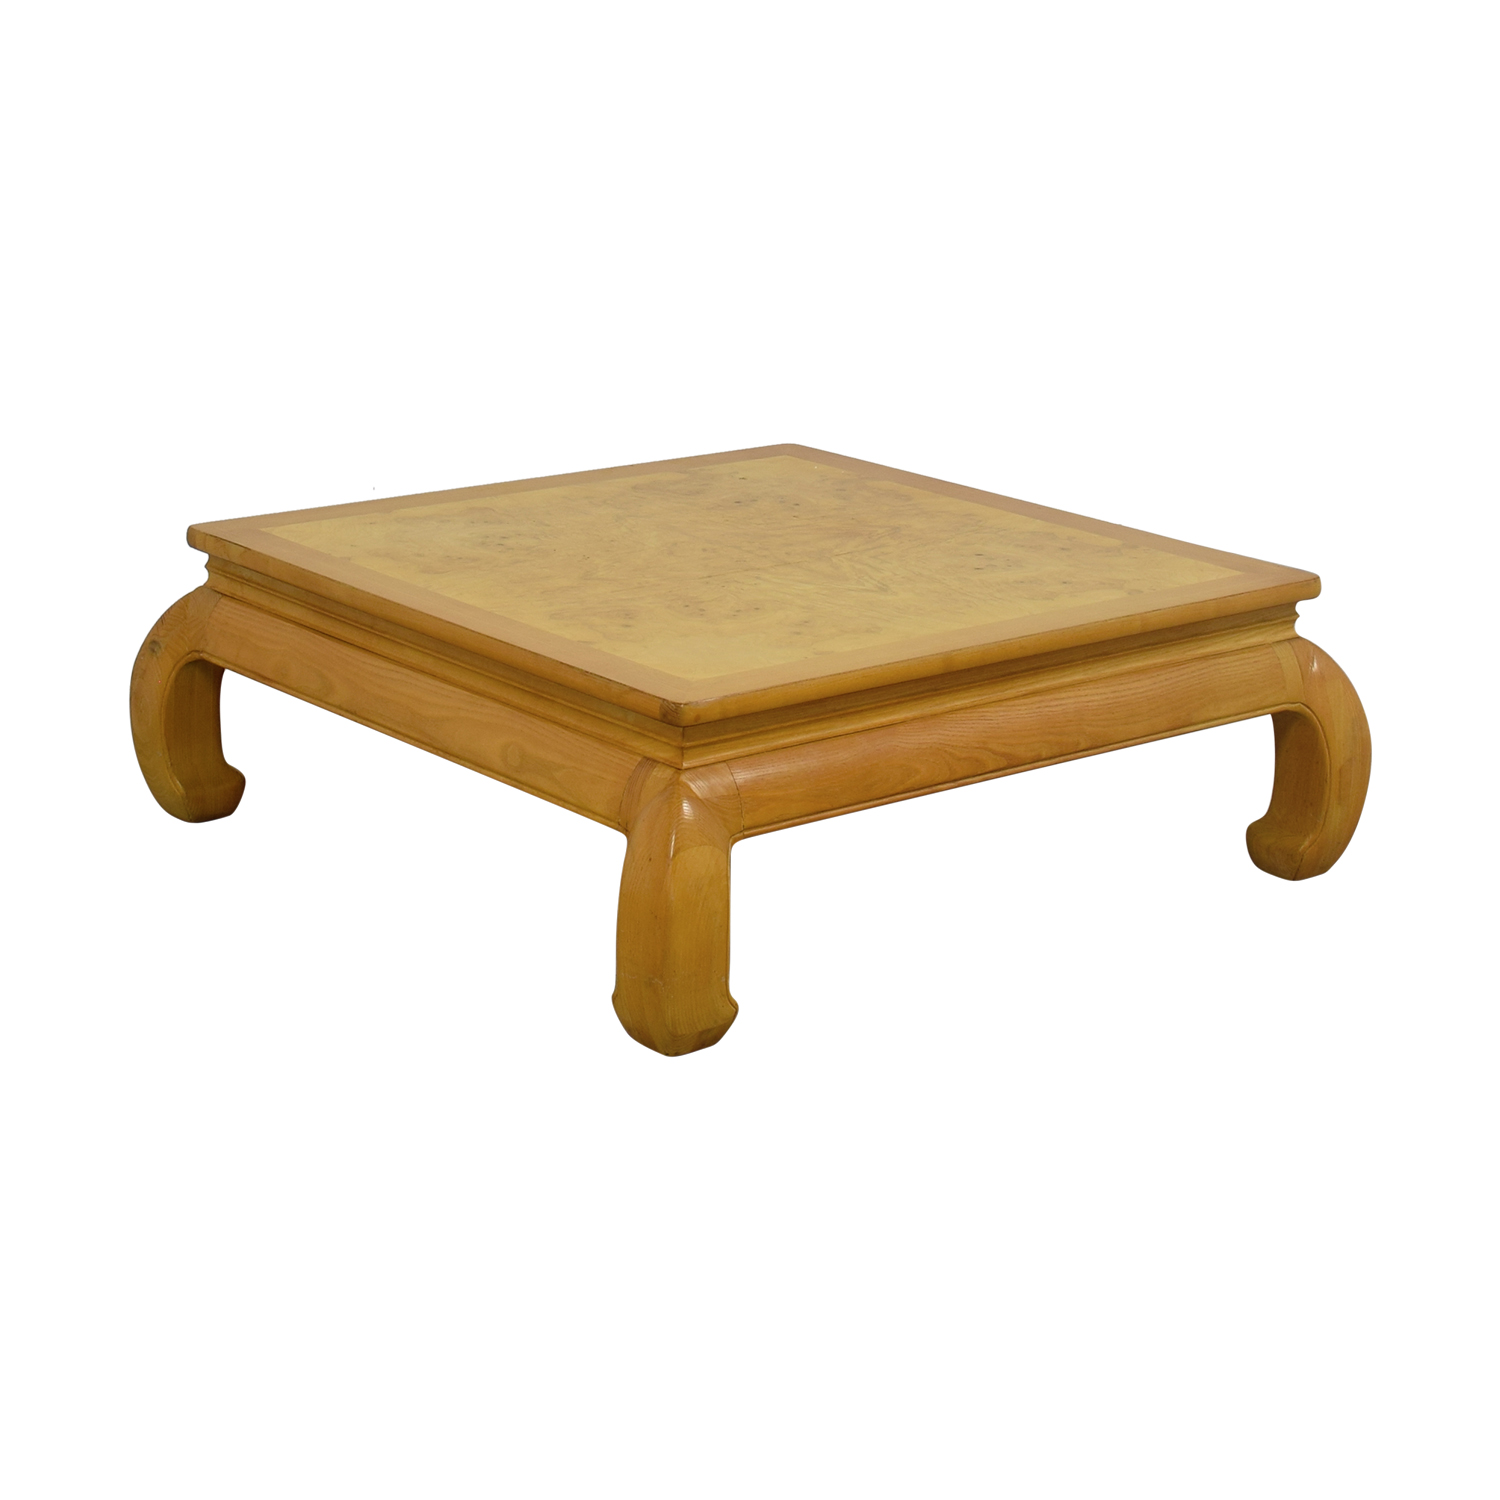 off henredon ming burlwood top coffee table tables second hand burl wood accent furniture leg extensions round mosaic outdoor door stopper small square glass behind sofa antique